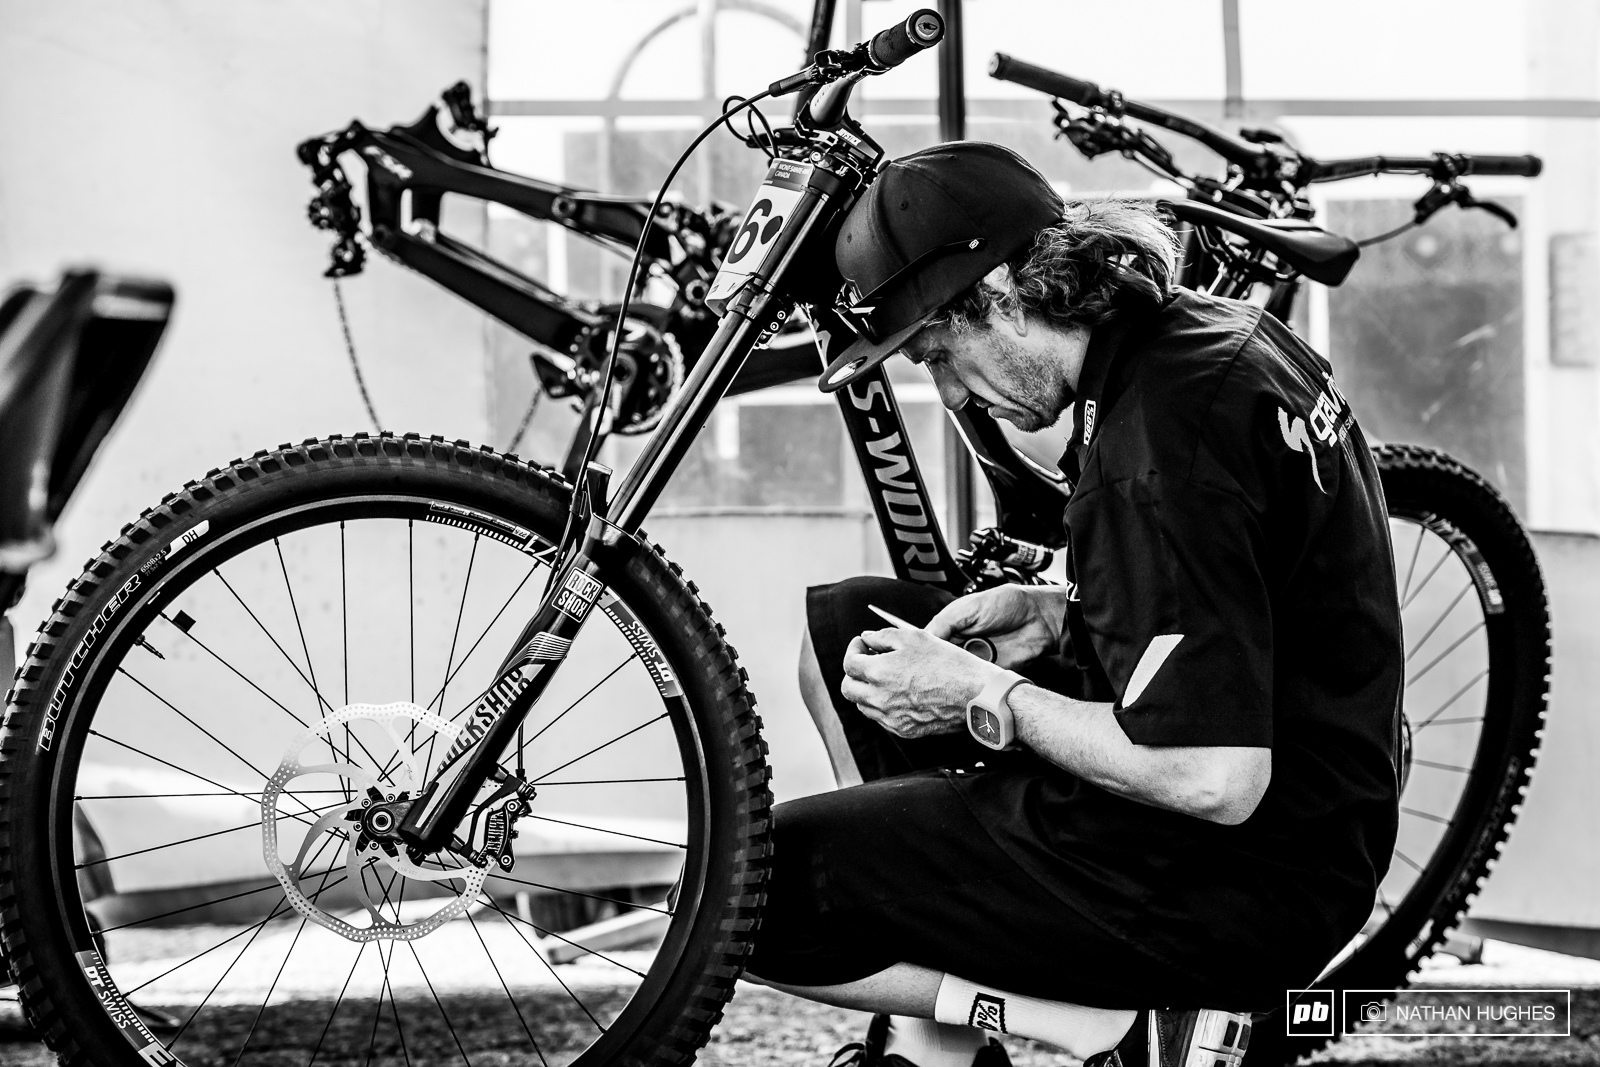 Jack makes the finishing touches to Loic s red hot ride in the Gravity Republic pit.